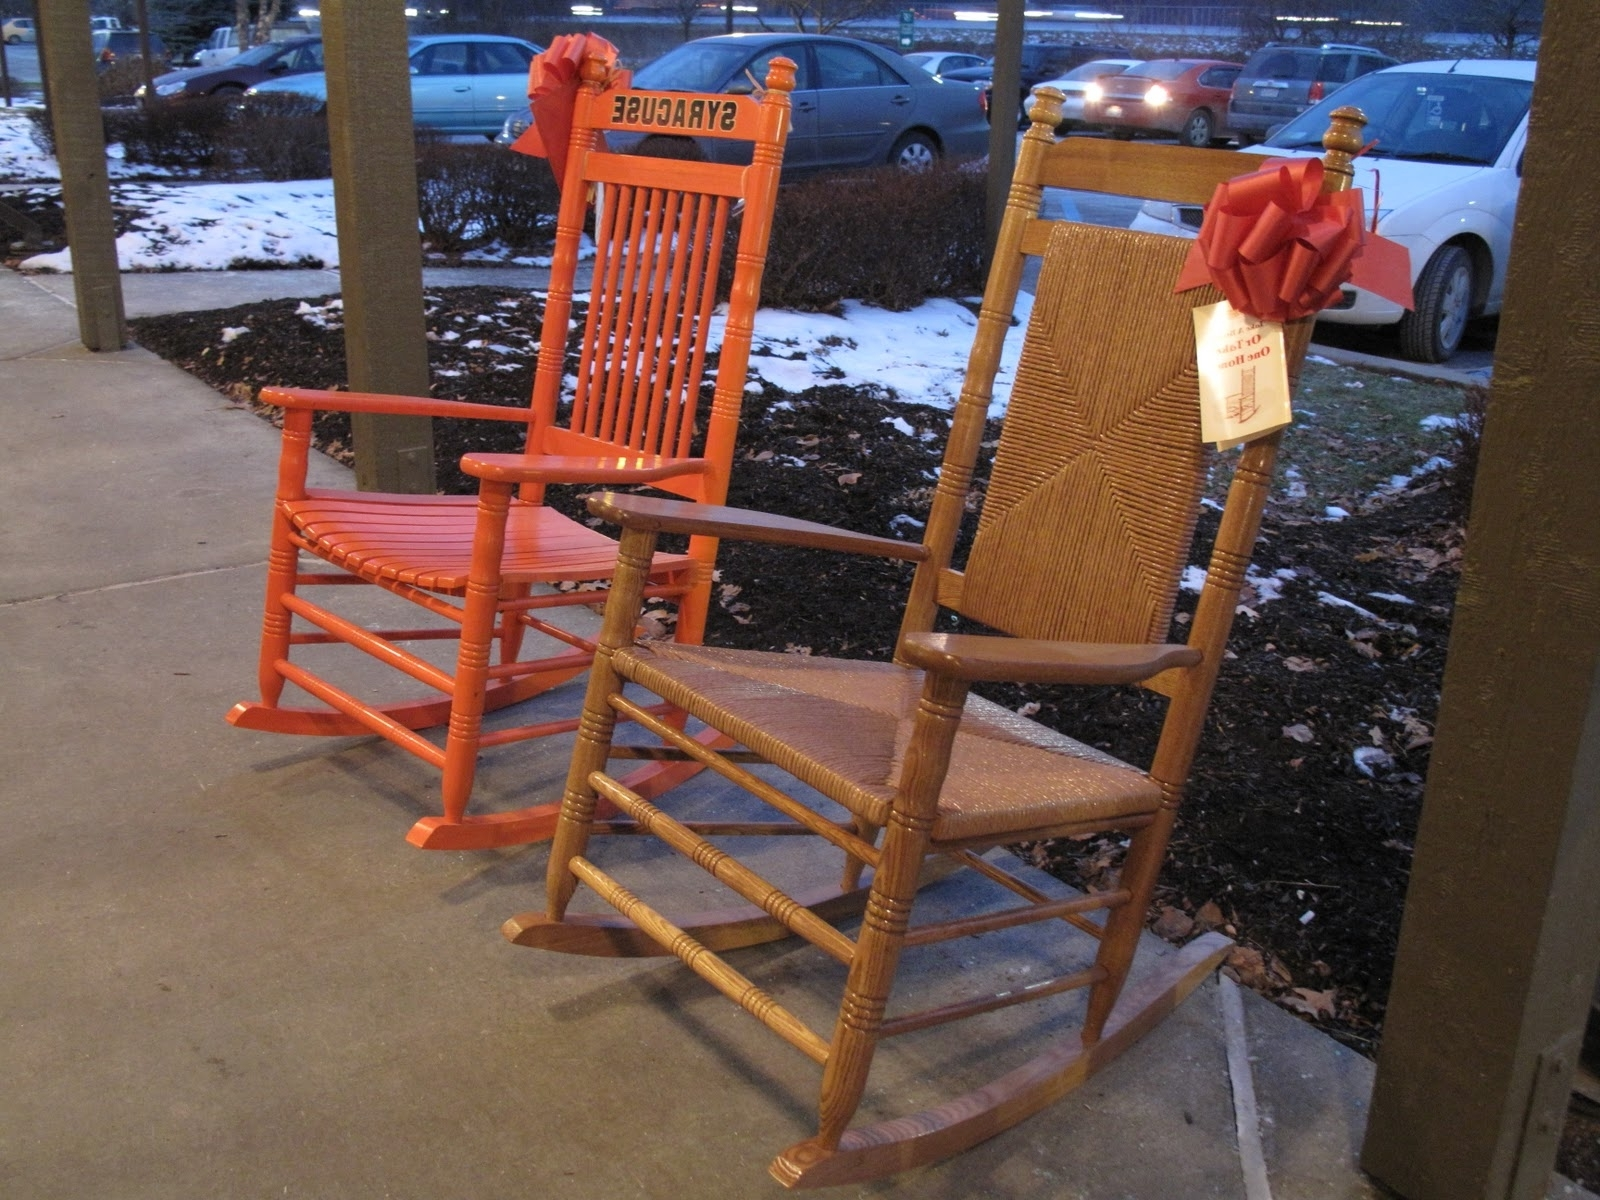 Well Known Neonlimesugdom Cracker Barrel Rocking Chairs Military Within Rocking Chairs At Cracker Barrel (View 3 of 15)